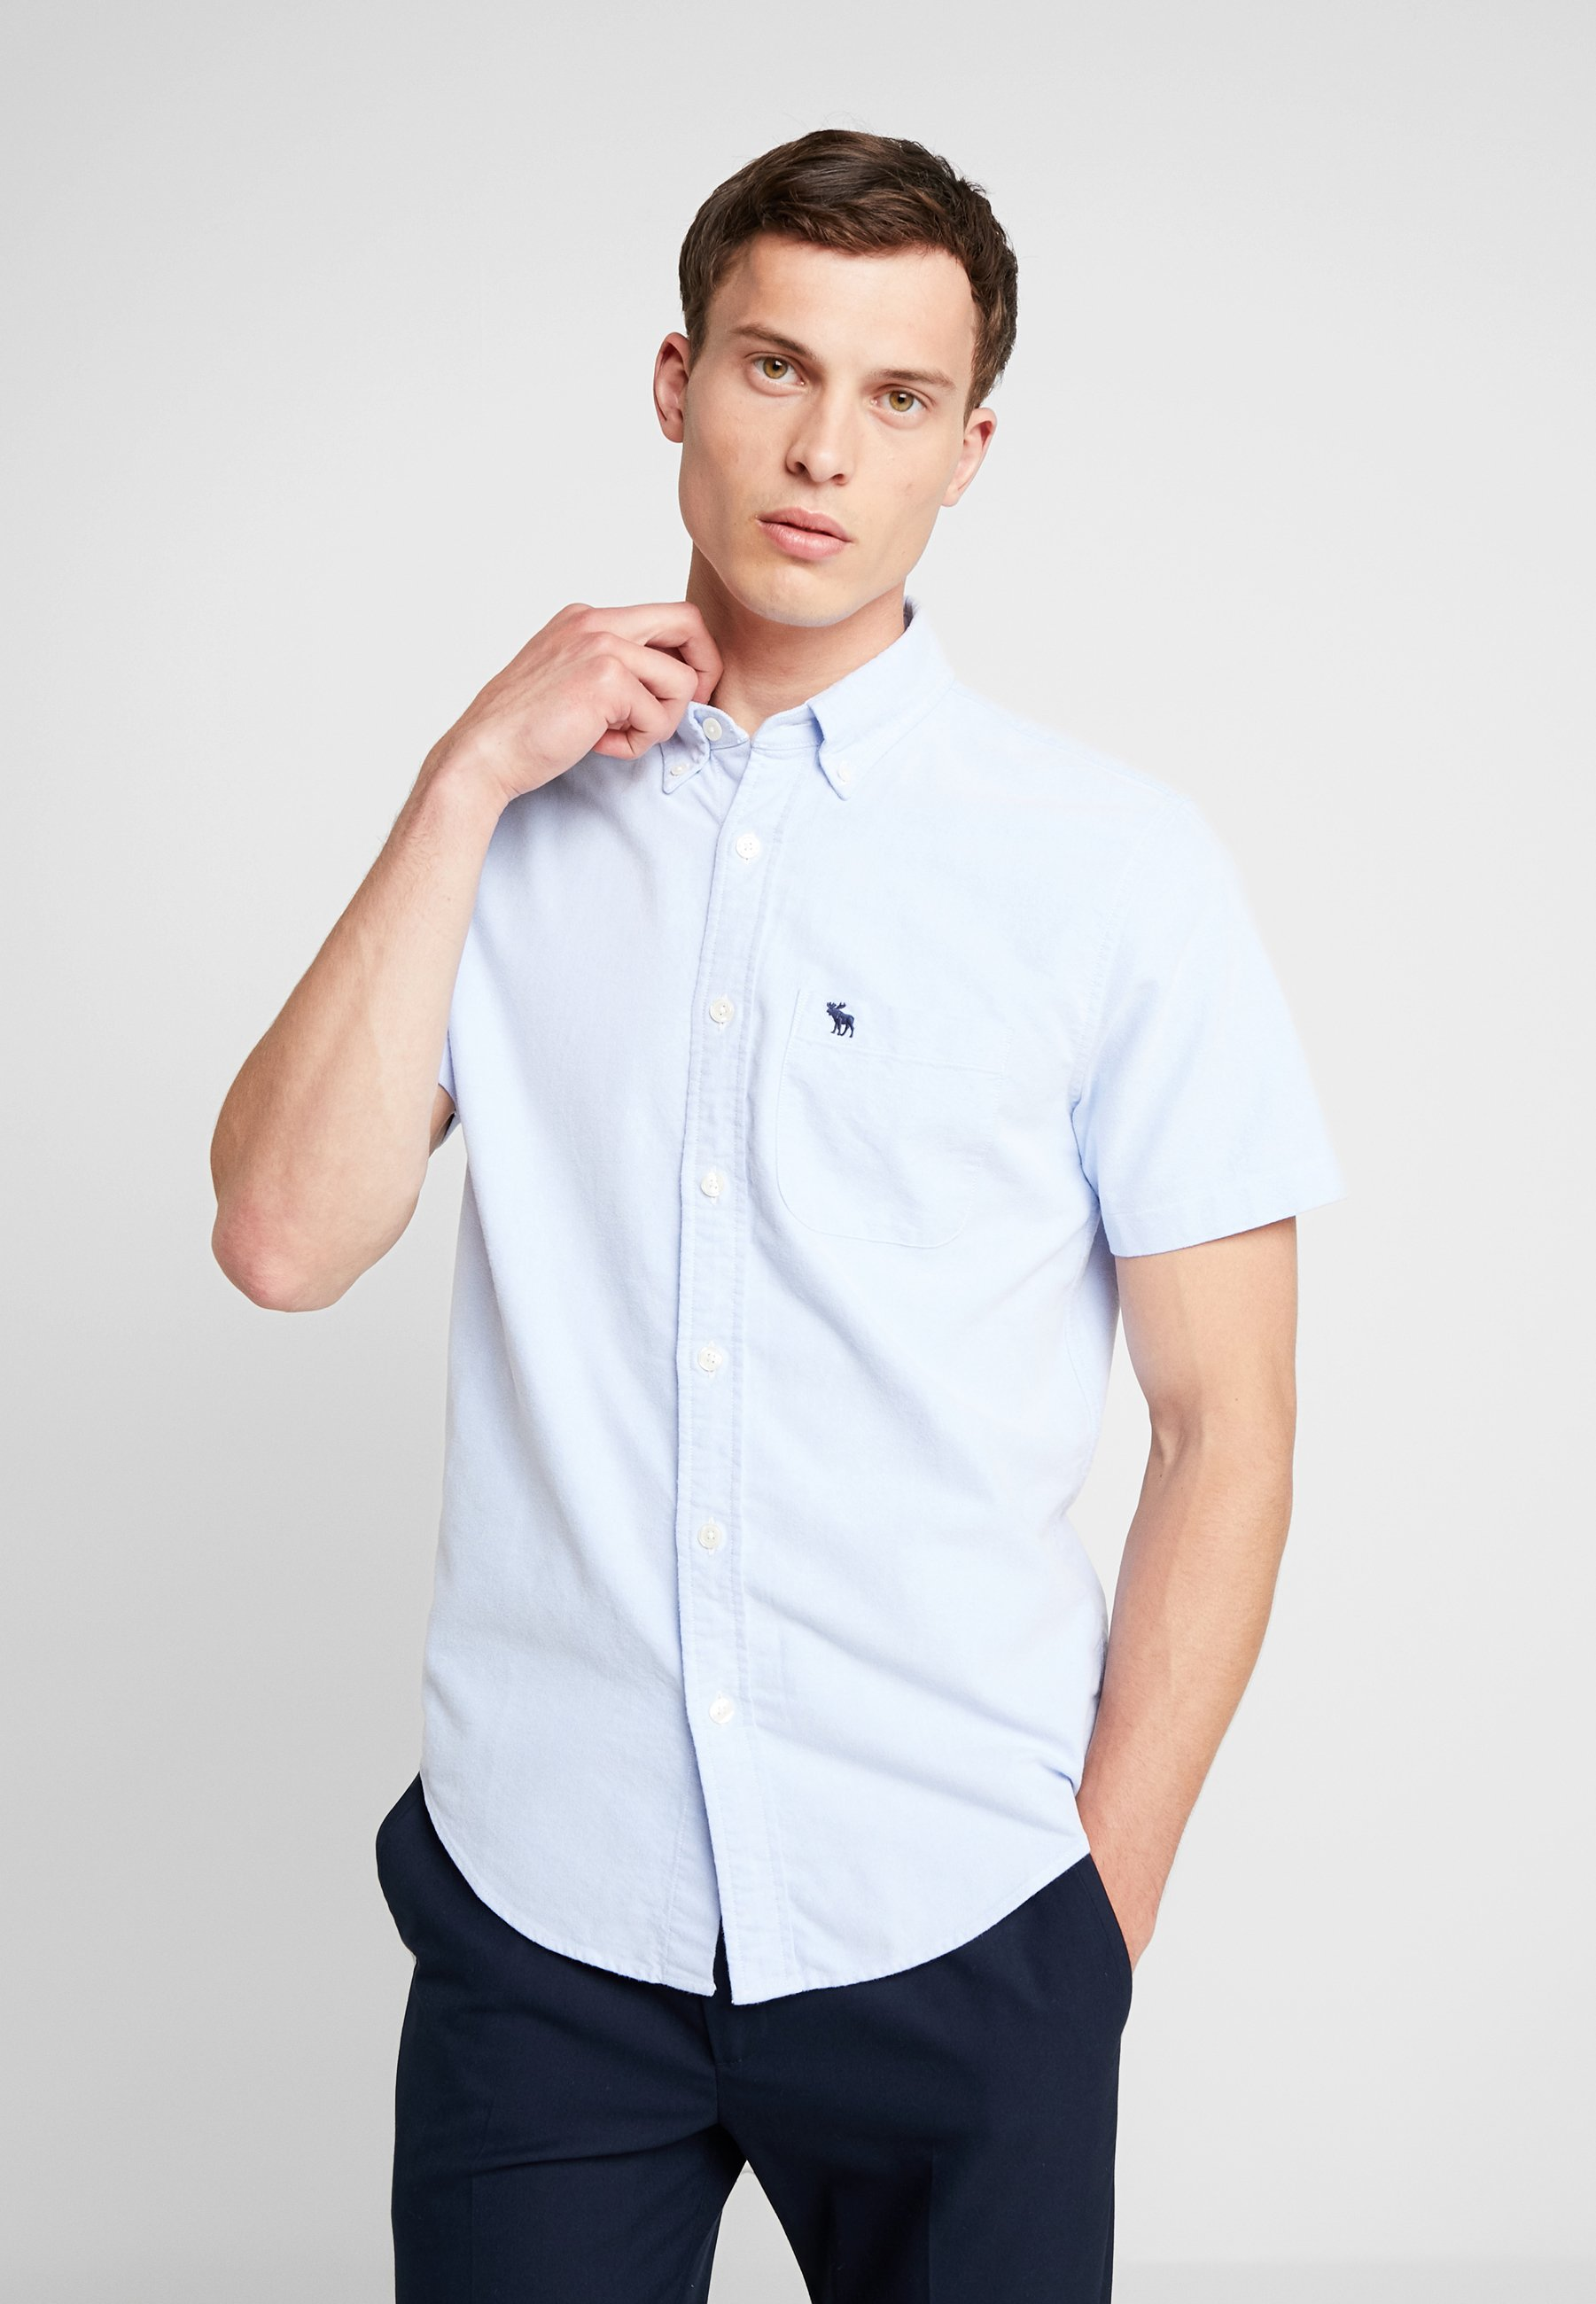 OxfordChemise Fitch Fitch Navy Fitch OxfordChemise Fitch Navy OxfordChemise OxfordChemise Abercrombieamp; Abercrombieamp; Abercrombieamp; Navy Abercrombieamp; CBxerdEQoW